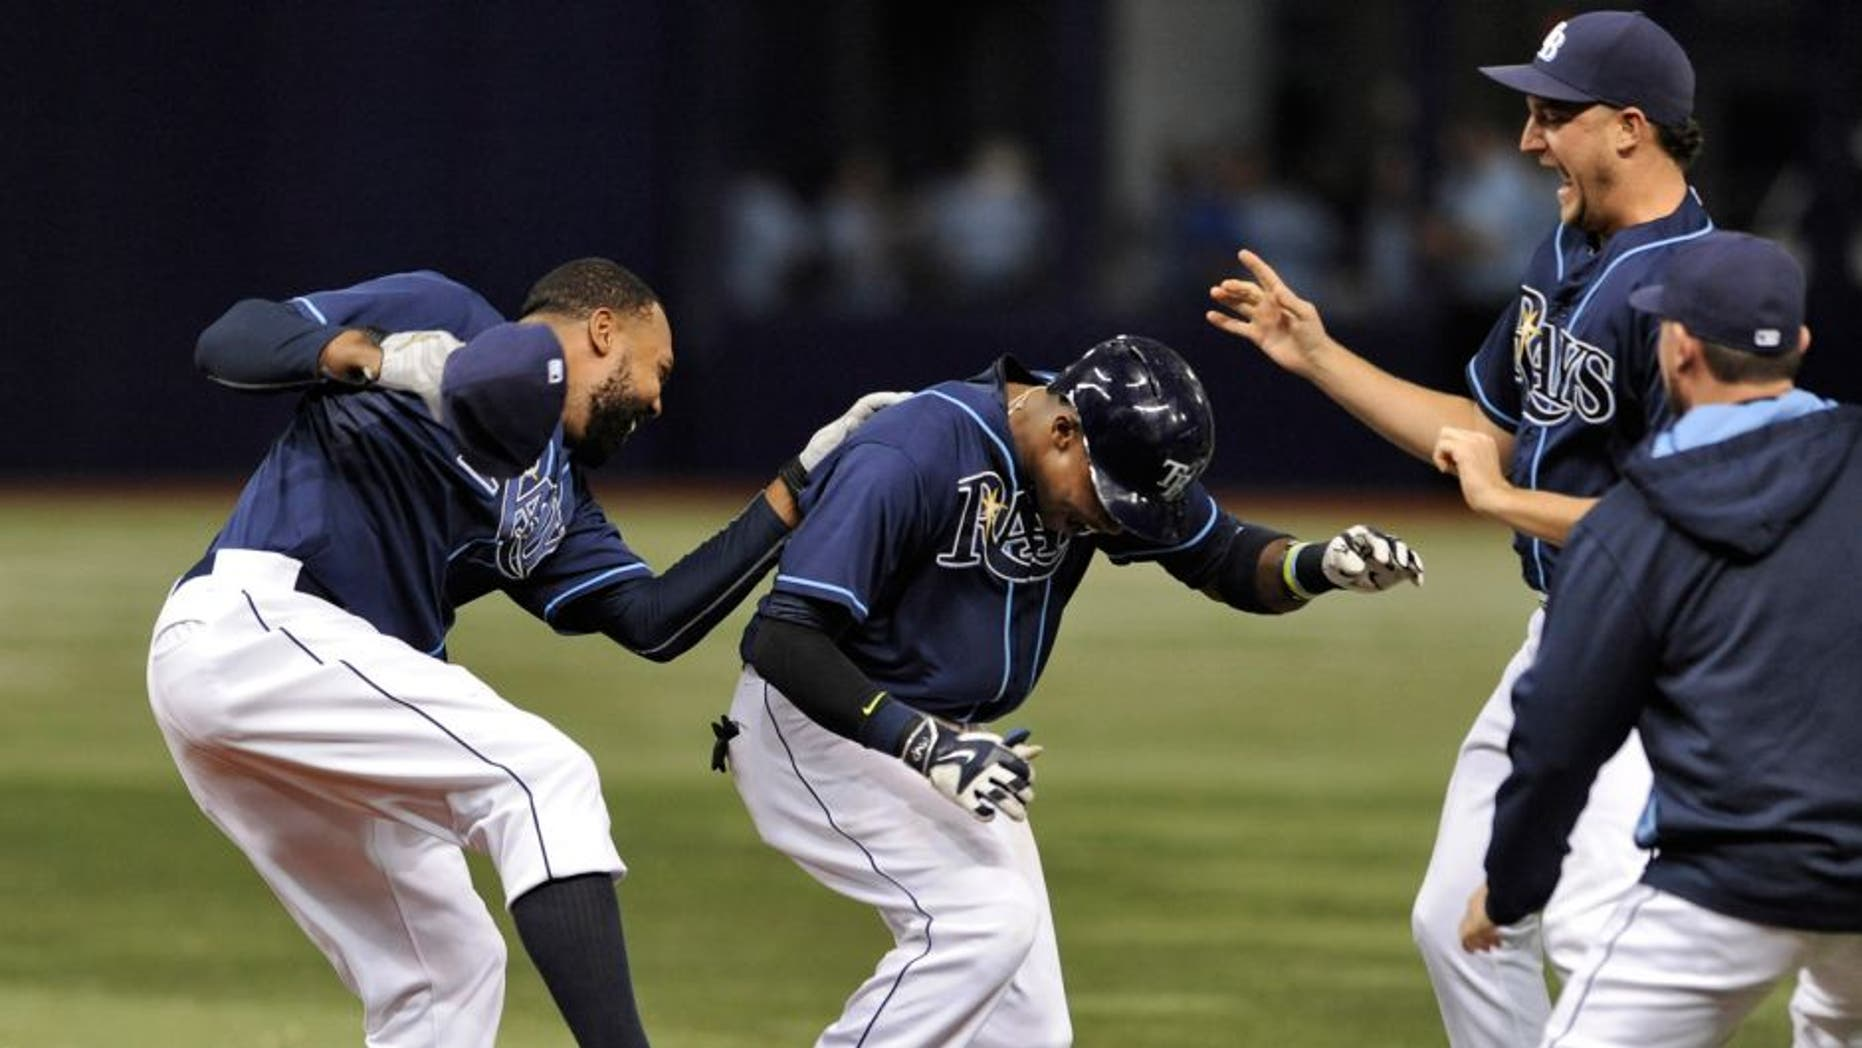 Tampa Bay Rays' Joey Butler, left, and Brad Boxberger, second from right, celebrate with Tim Beckham, center, after Beckham's two-run walk-off single to beat the Toronto Blue Jays 4-3 during the ninth inning of a baseball game Saturday, Oct. 3, 2015, in St. Petersburg, Fla. (AP Photo/Steve Nesius)